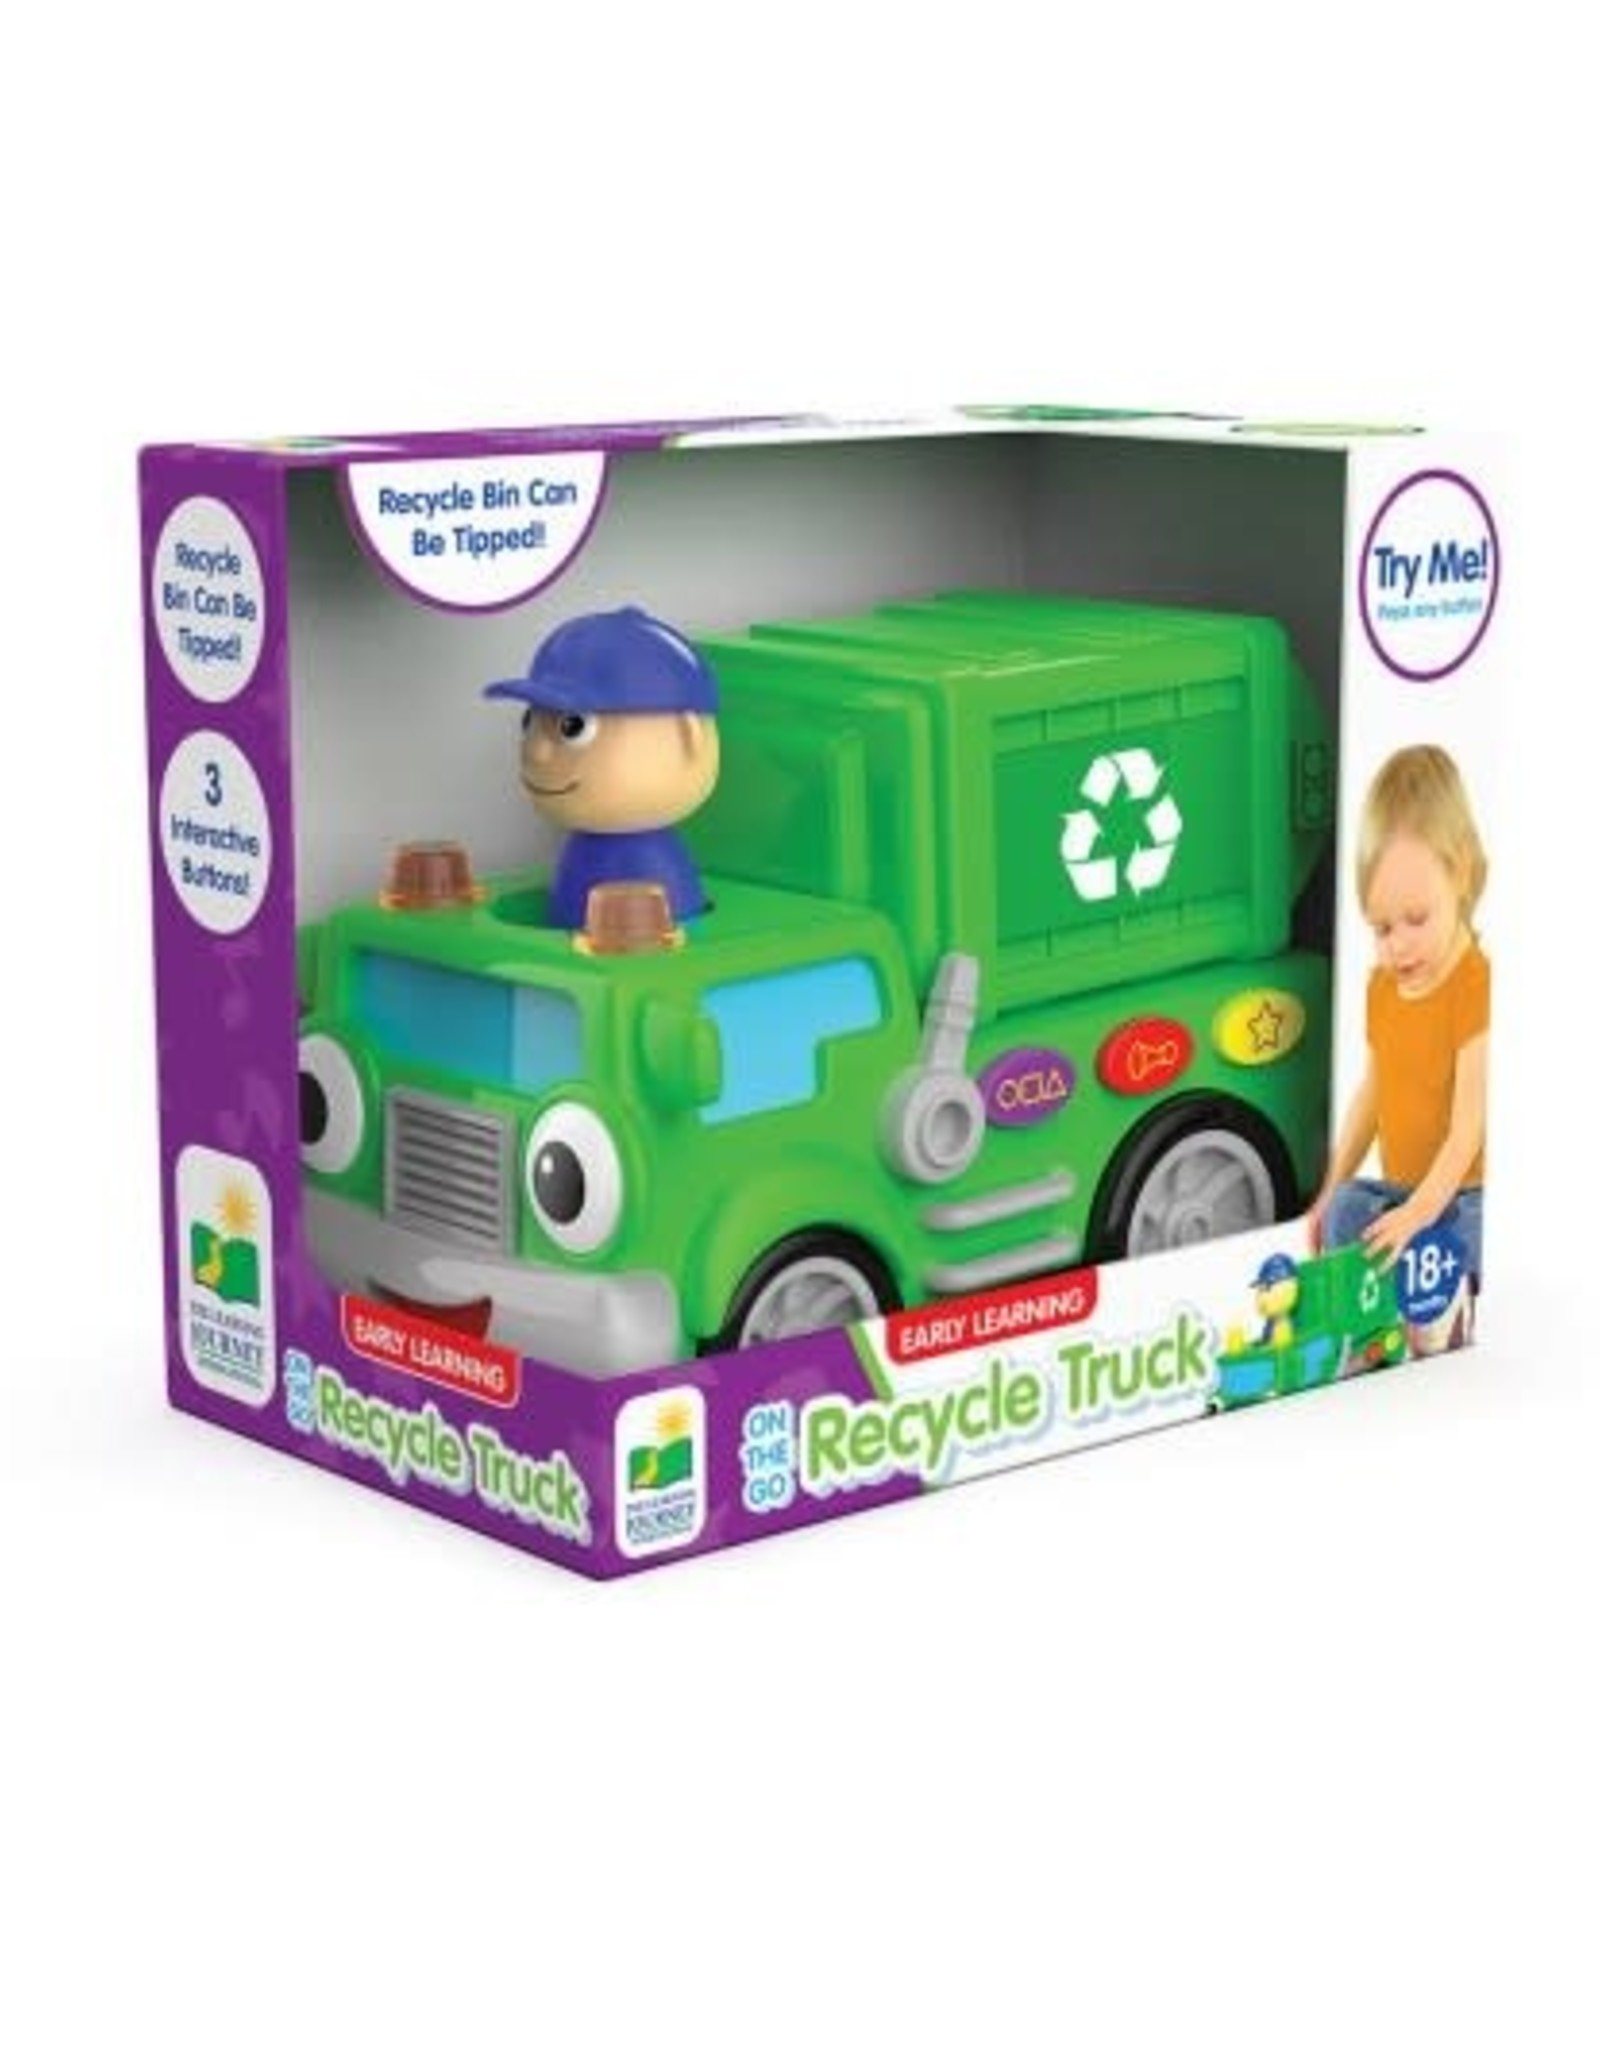 The Learning Journey On the Go Recycle Truck Electronic Baby Toy